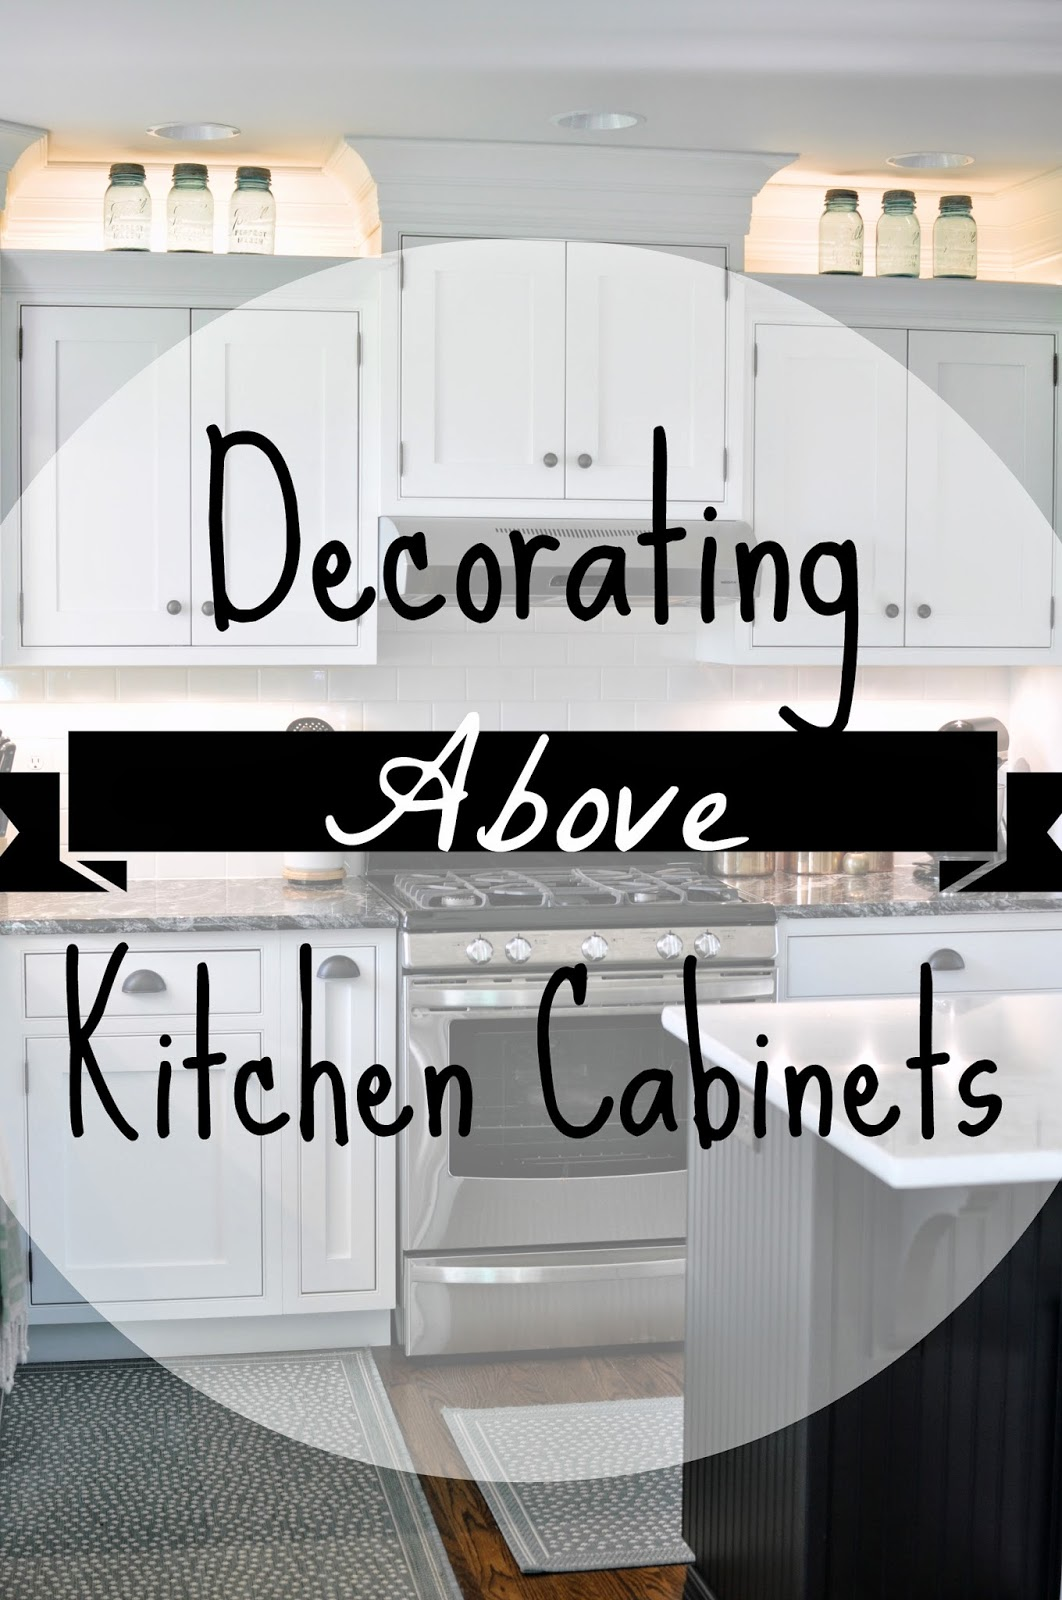 A Nurse And A Nerd: Decorating Above the Cabinets